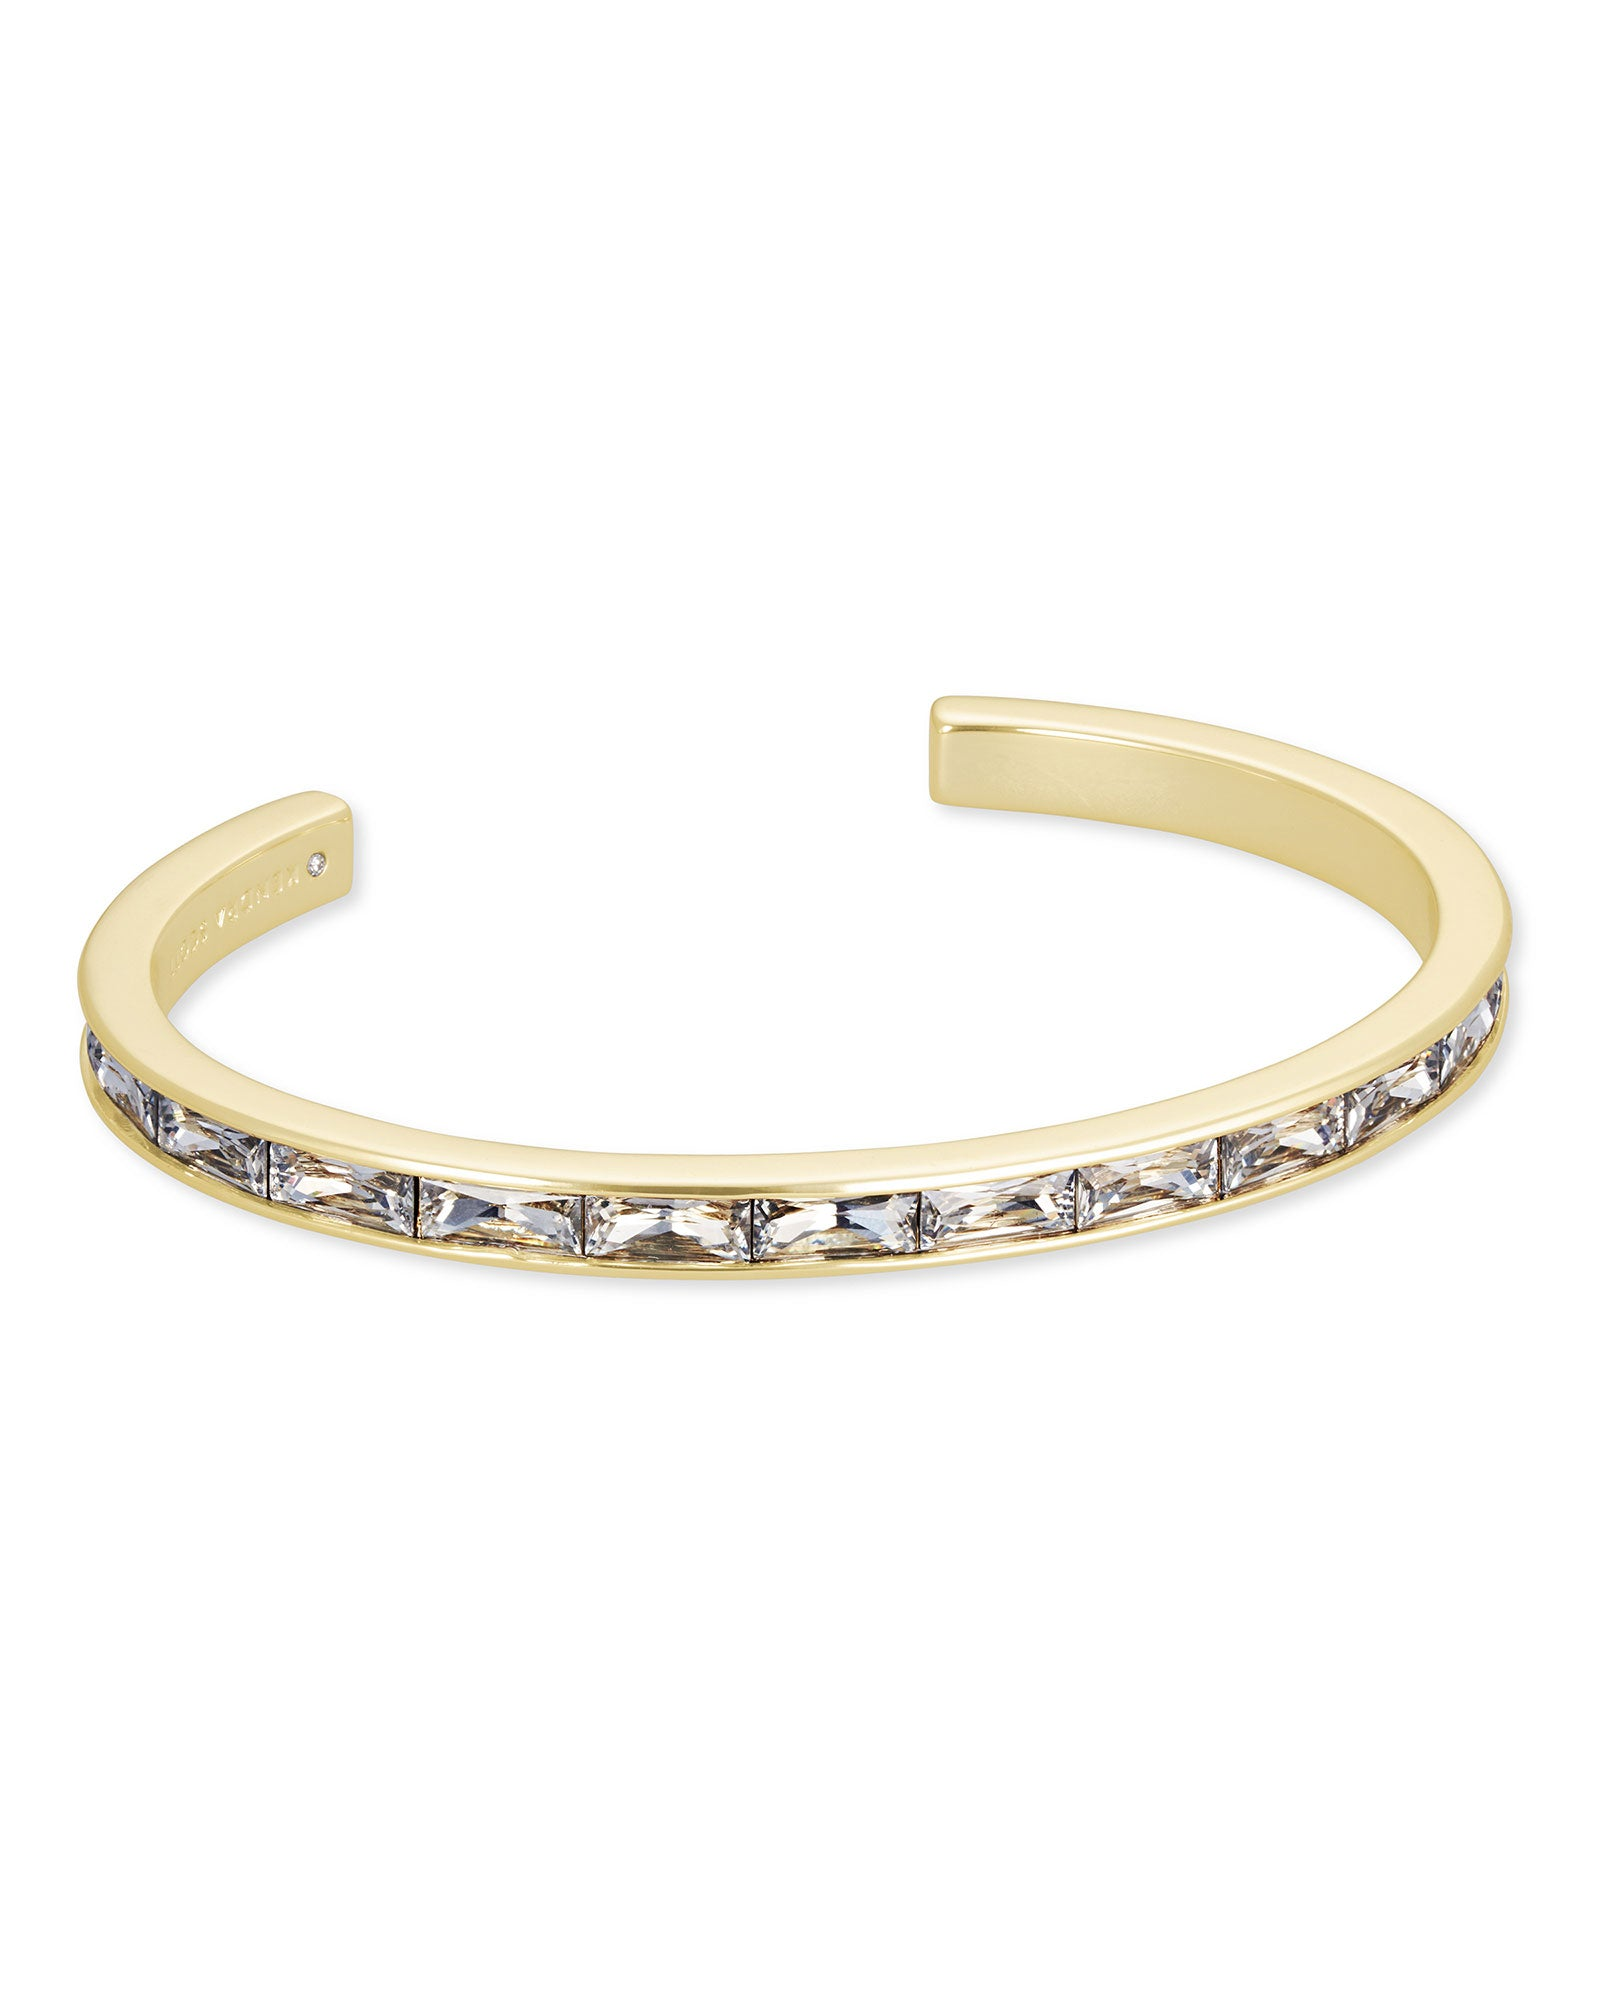 Kendra Scott Jack Gold Cuff Bracelet In White Crystal